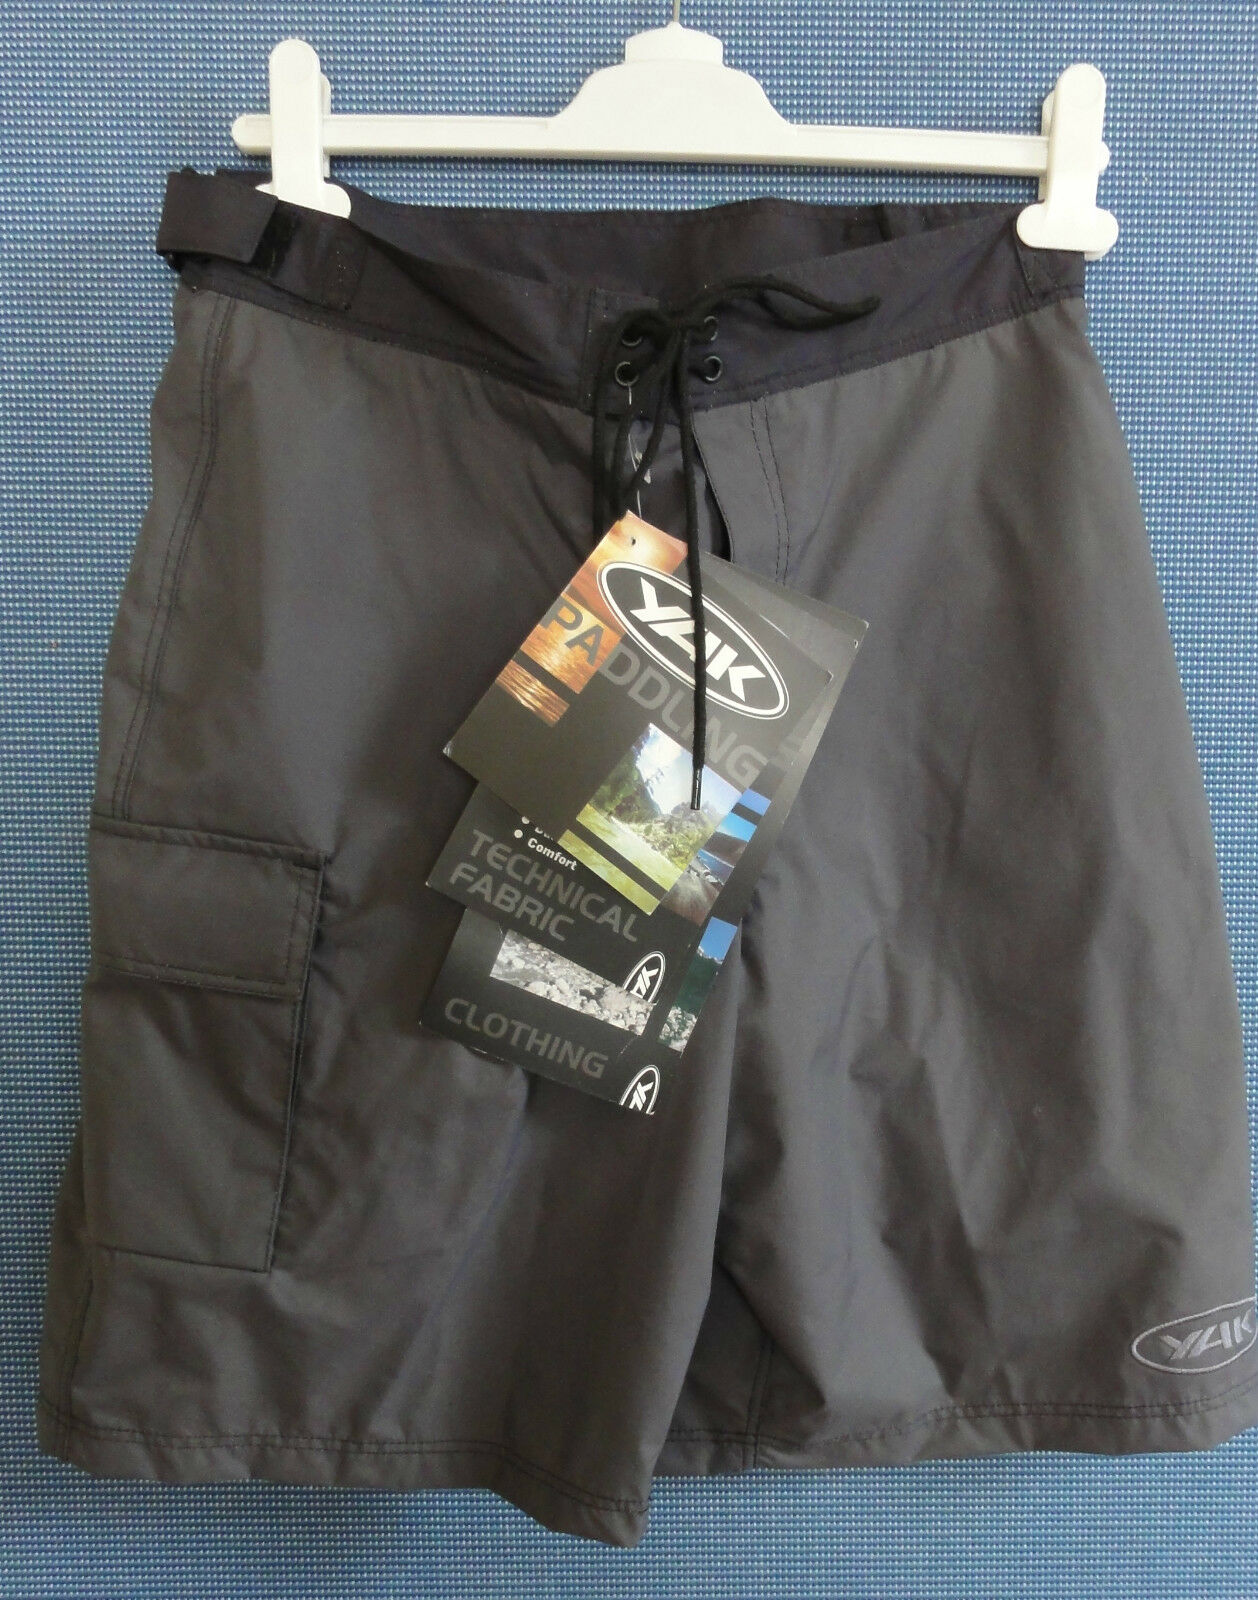 Crewsaver Yak Board Shorts Mens Small Waterproof Breathable  Part No 5426